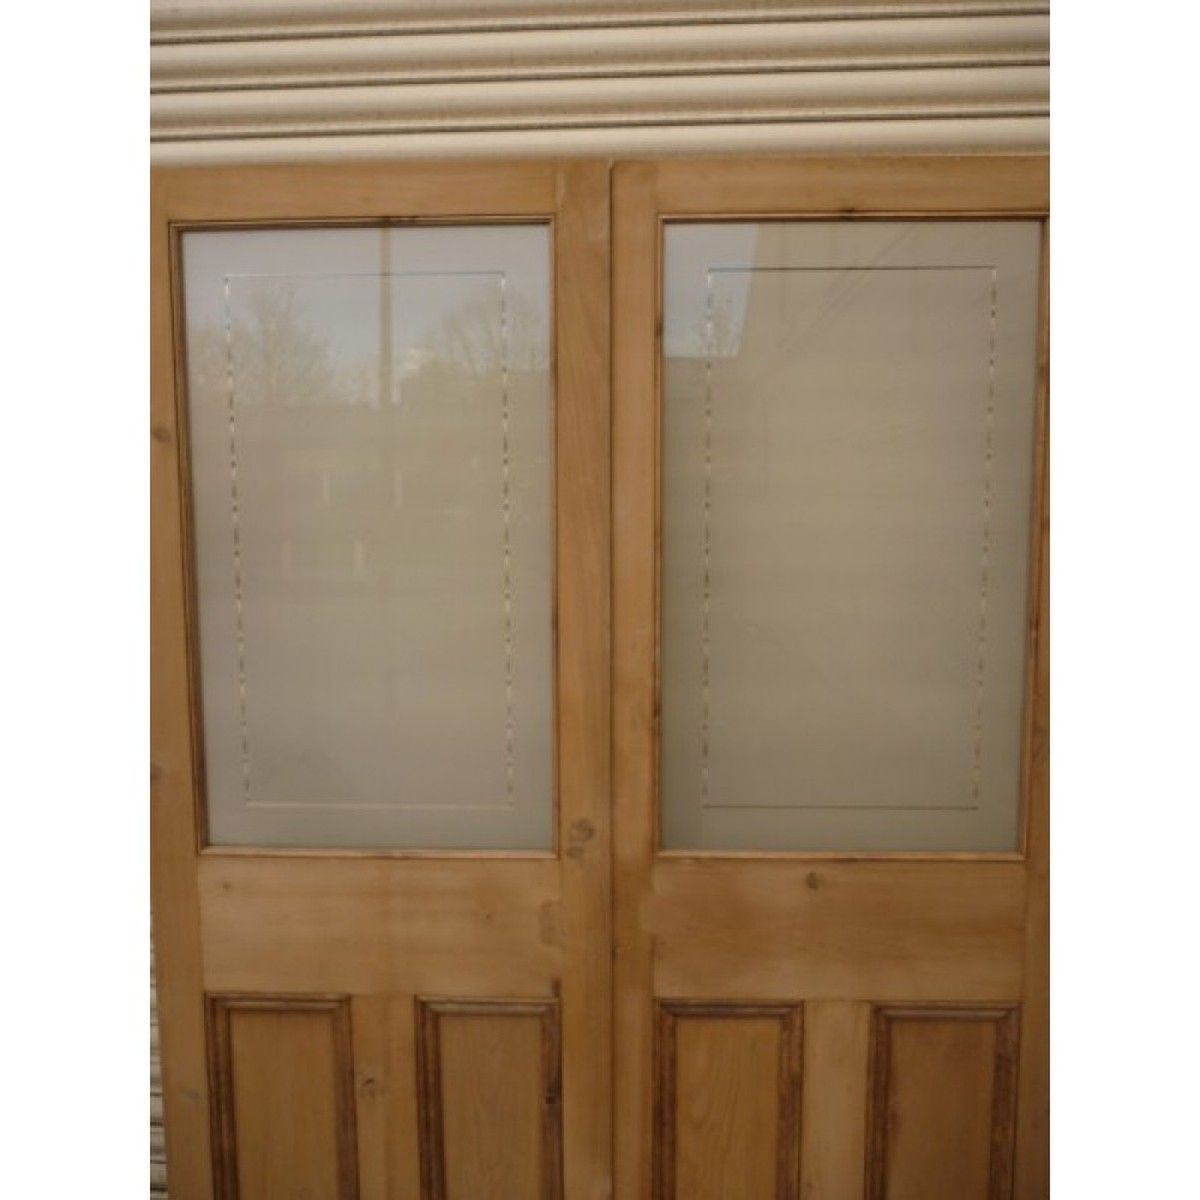 Secondhand vintage and reclaimed doors and windows for Double glass doors